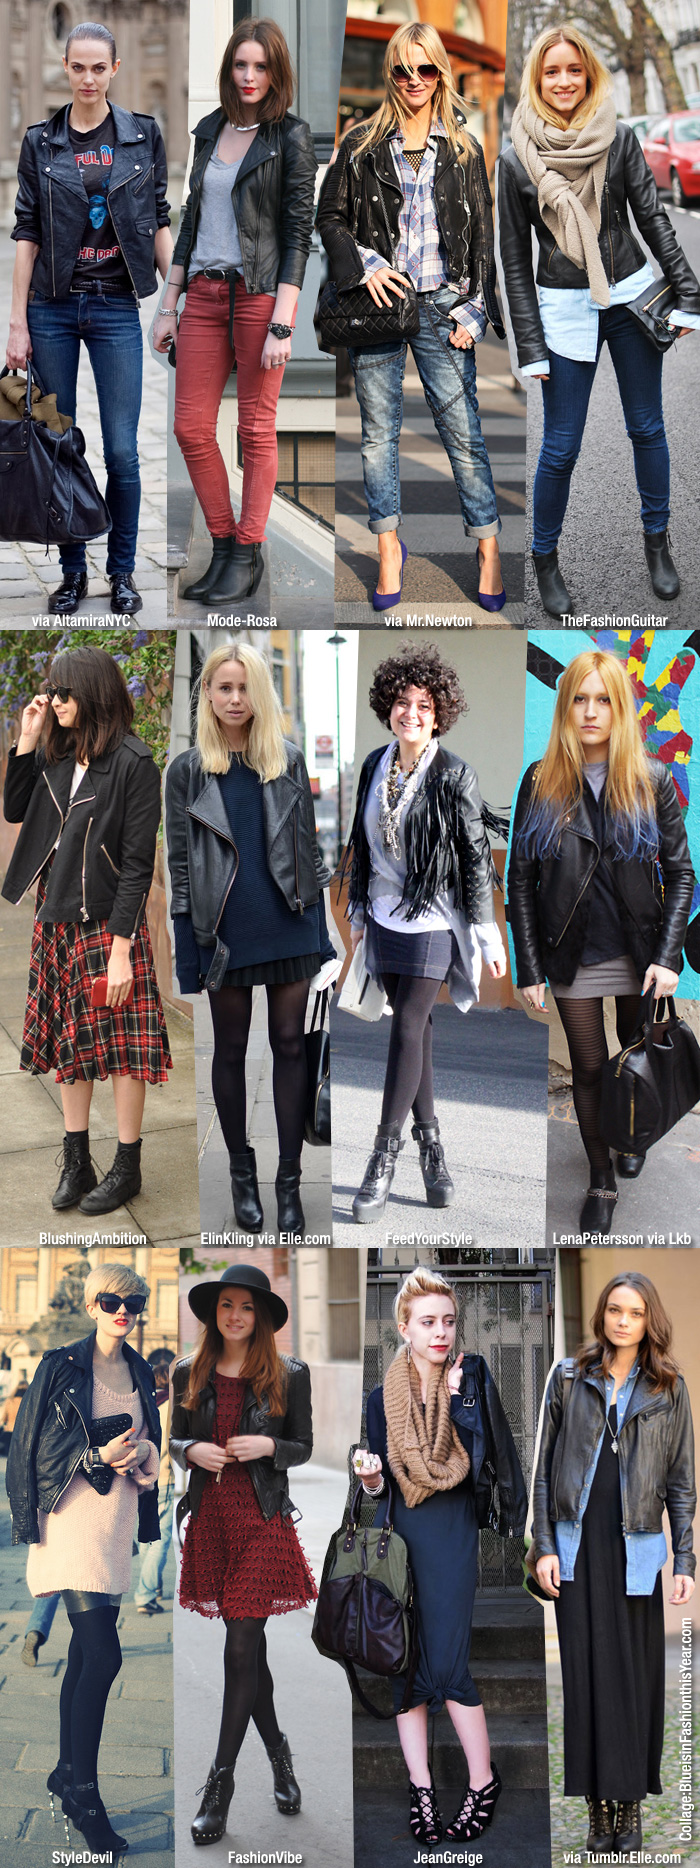 Jackets and Dresses